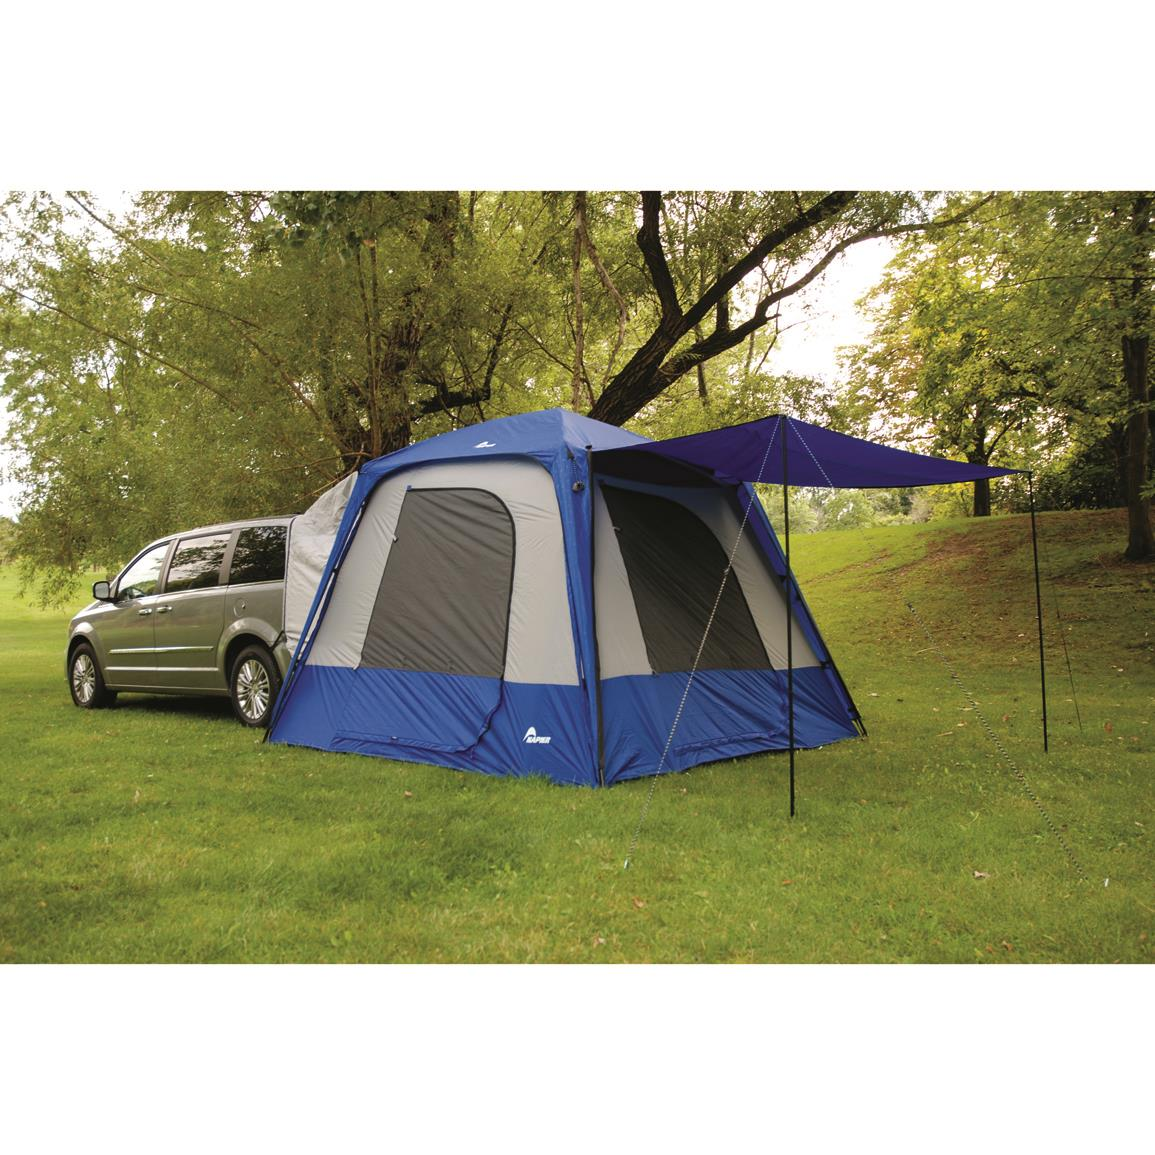 Large 6u0027 awning  sc 1 st  Sportsmanu0027s Guide & Napier Sportz SUV Tent with Screen Room - 168370 Truck Tents at ...